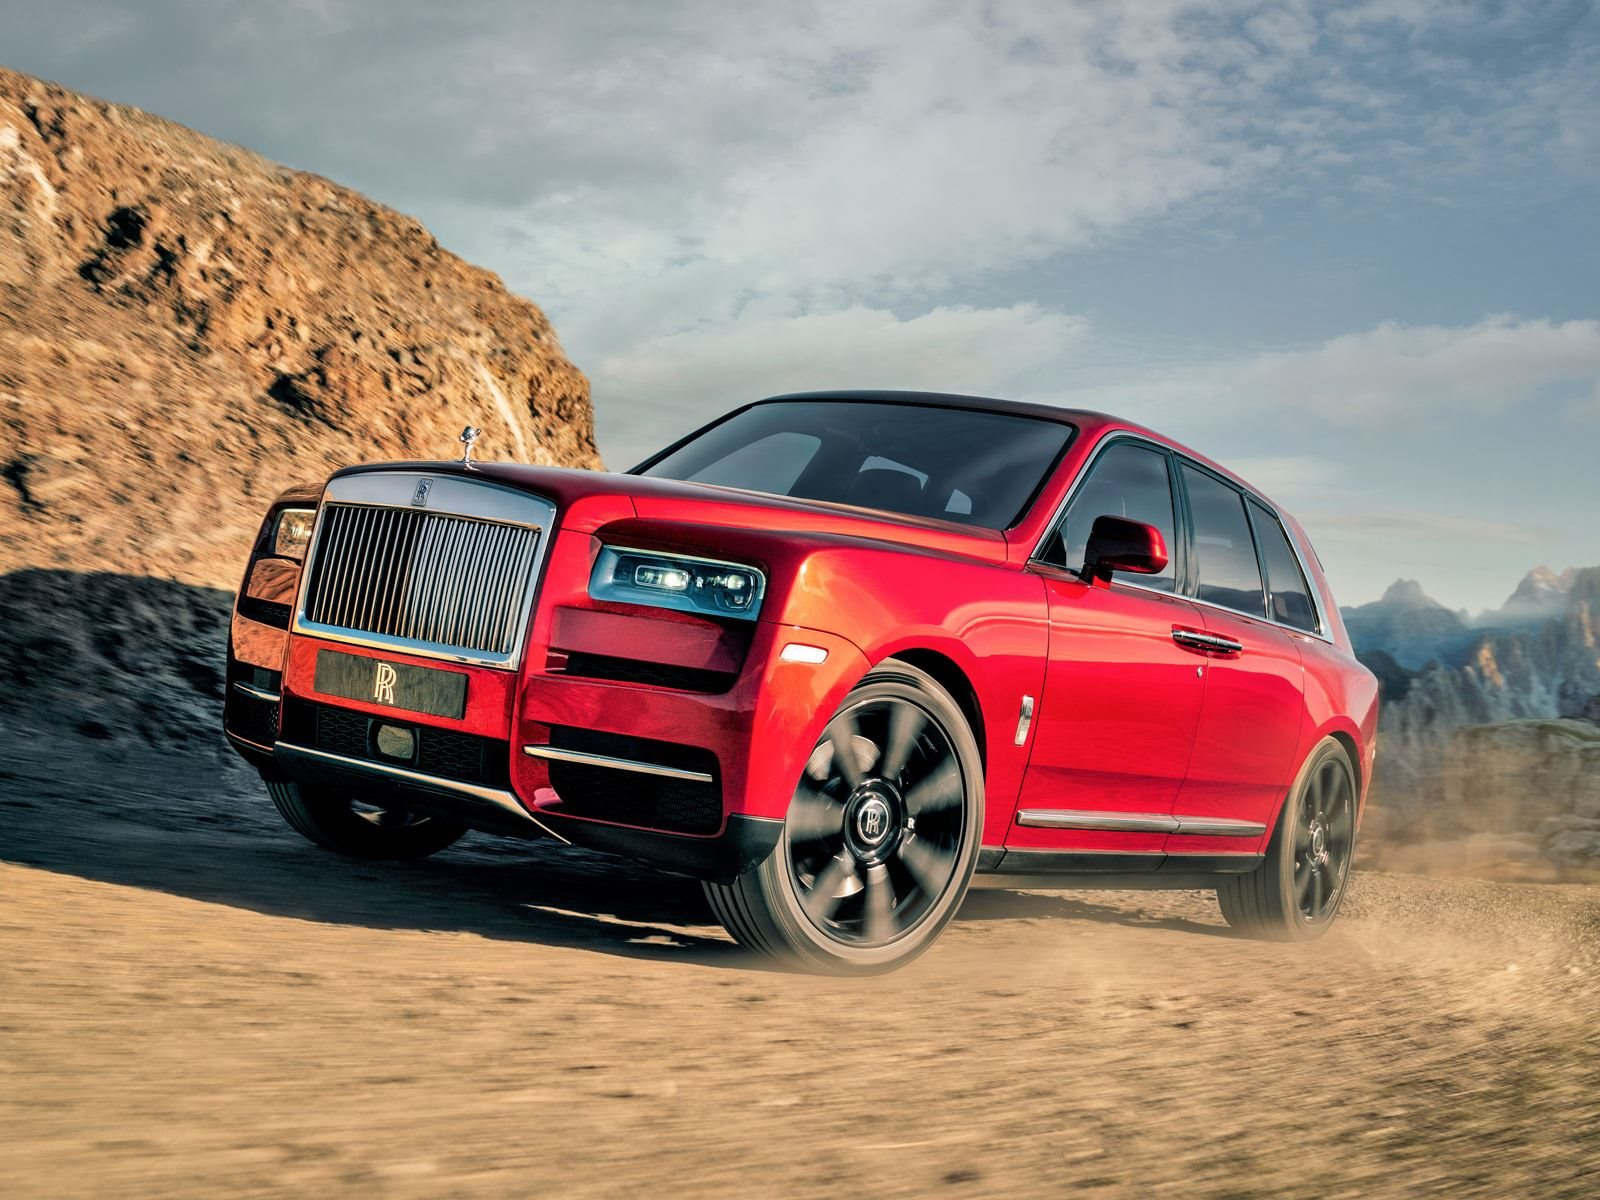 10 dieu co the ban chua biet ve 'sieu SUV' Rolls-Royce Cullinan